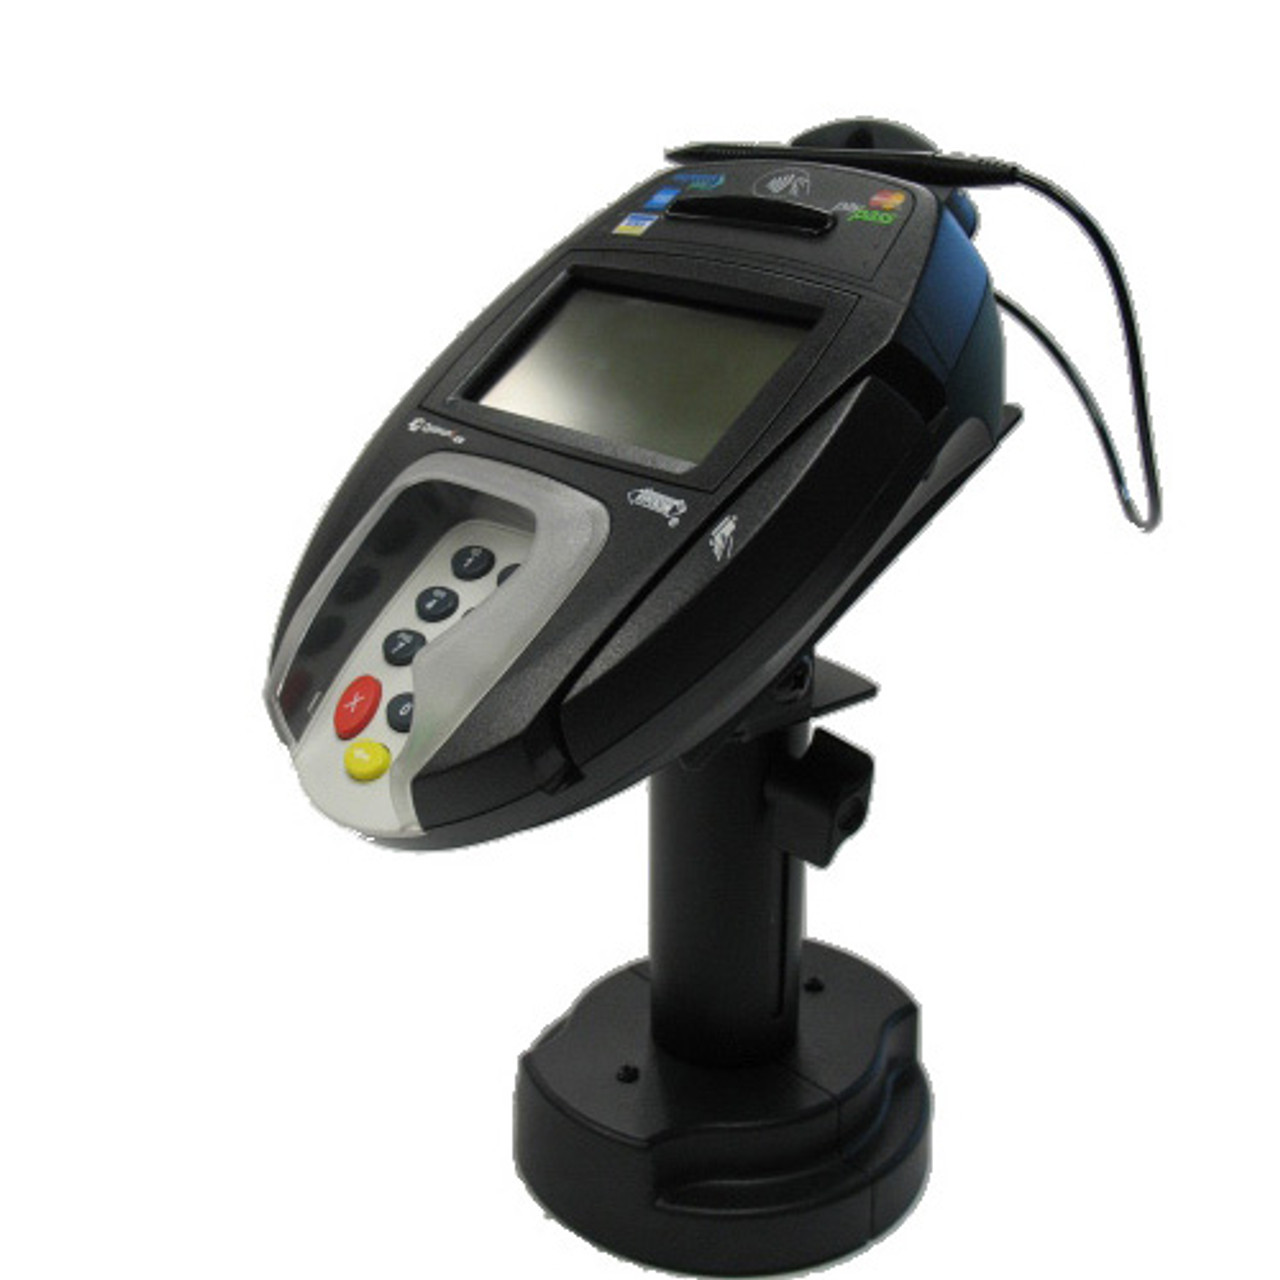 Verifone MX860 Credit Card Stand Telescoping Pedestal by Swivel Stands